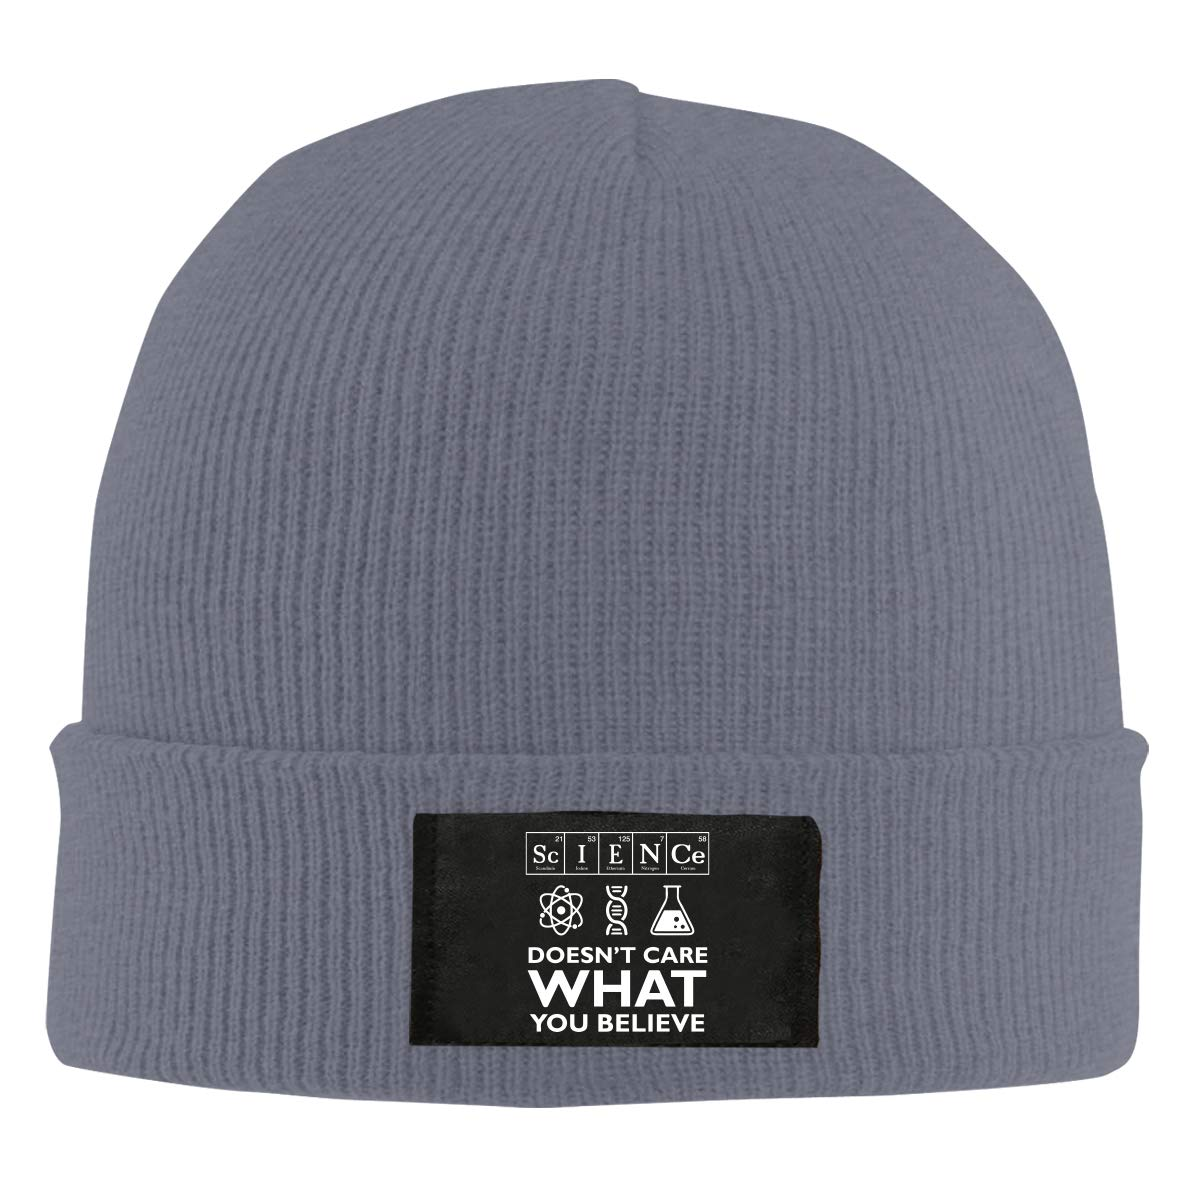 Science Doesnt Care What You Believe Women and Men Knitted Hat Comfortable Beanie Cap